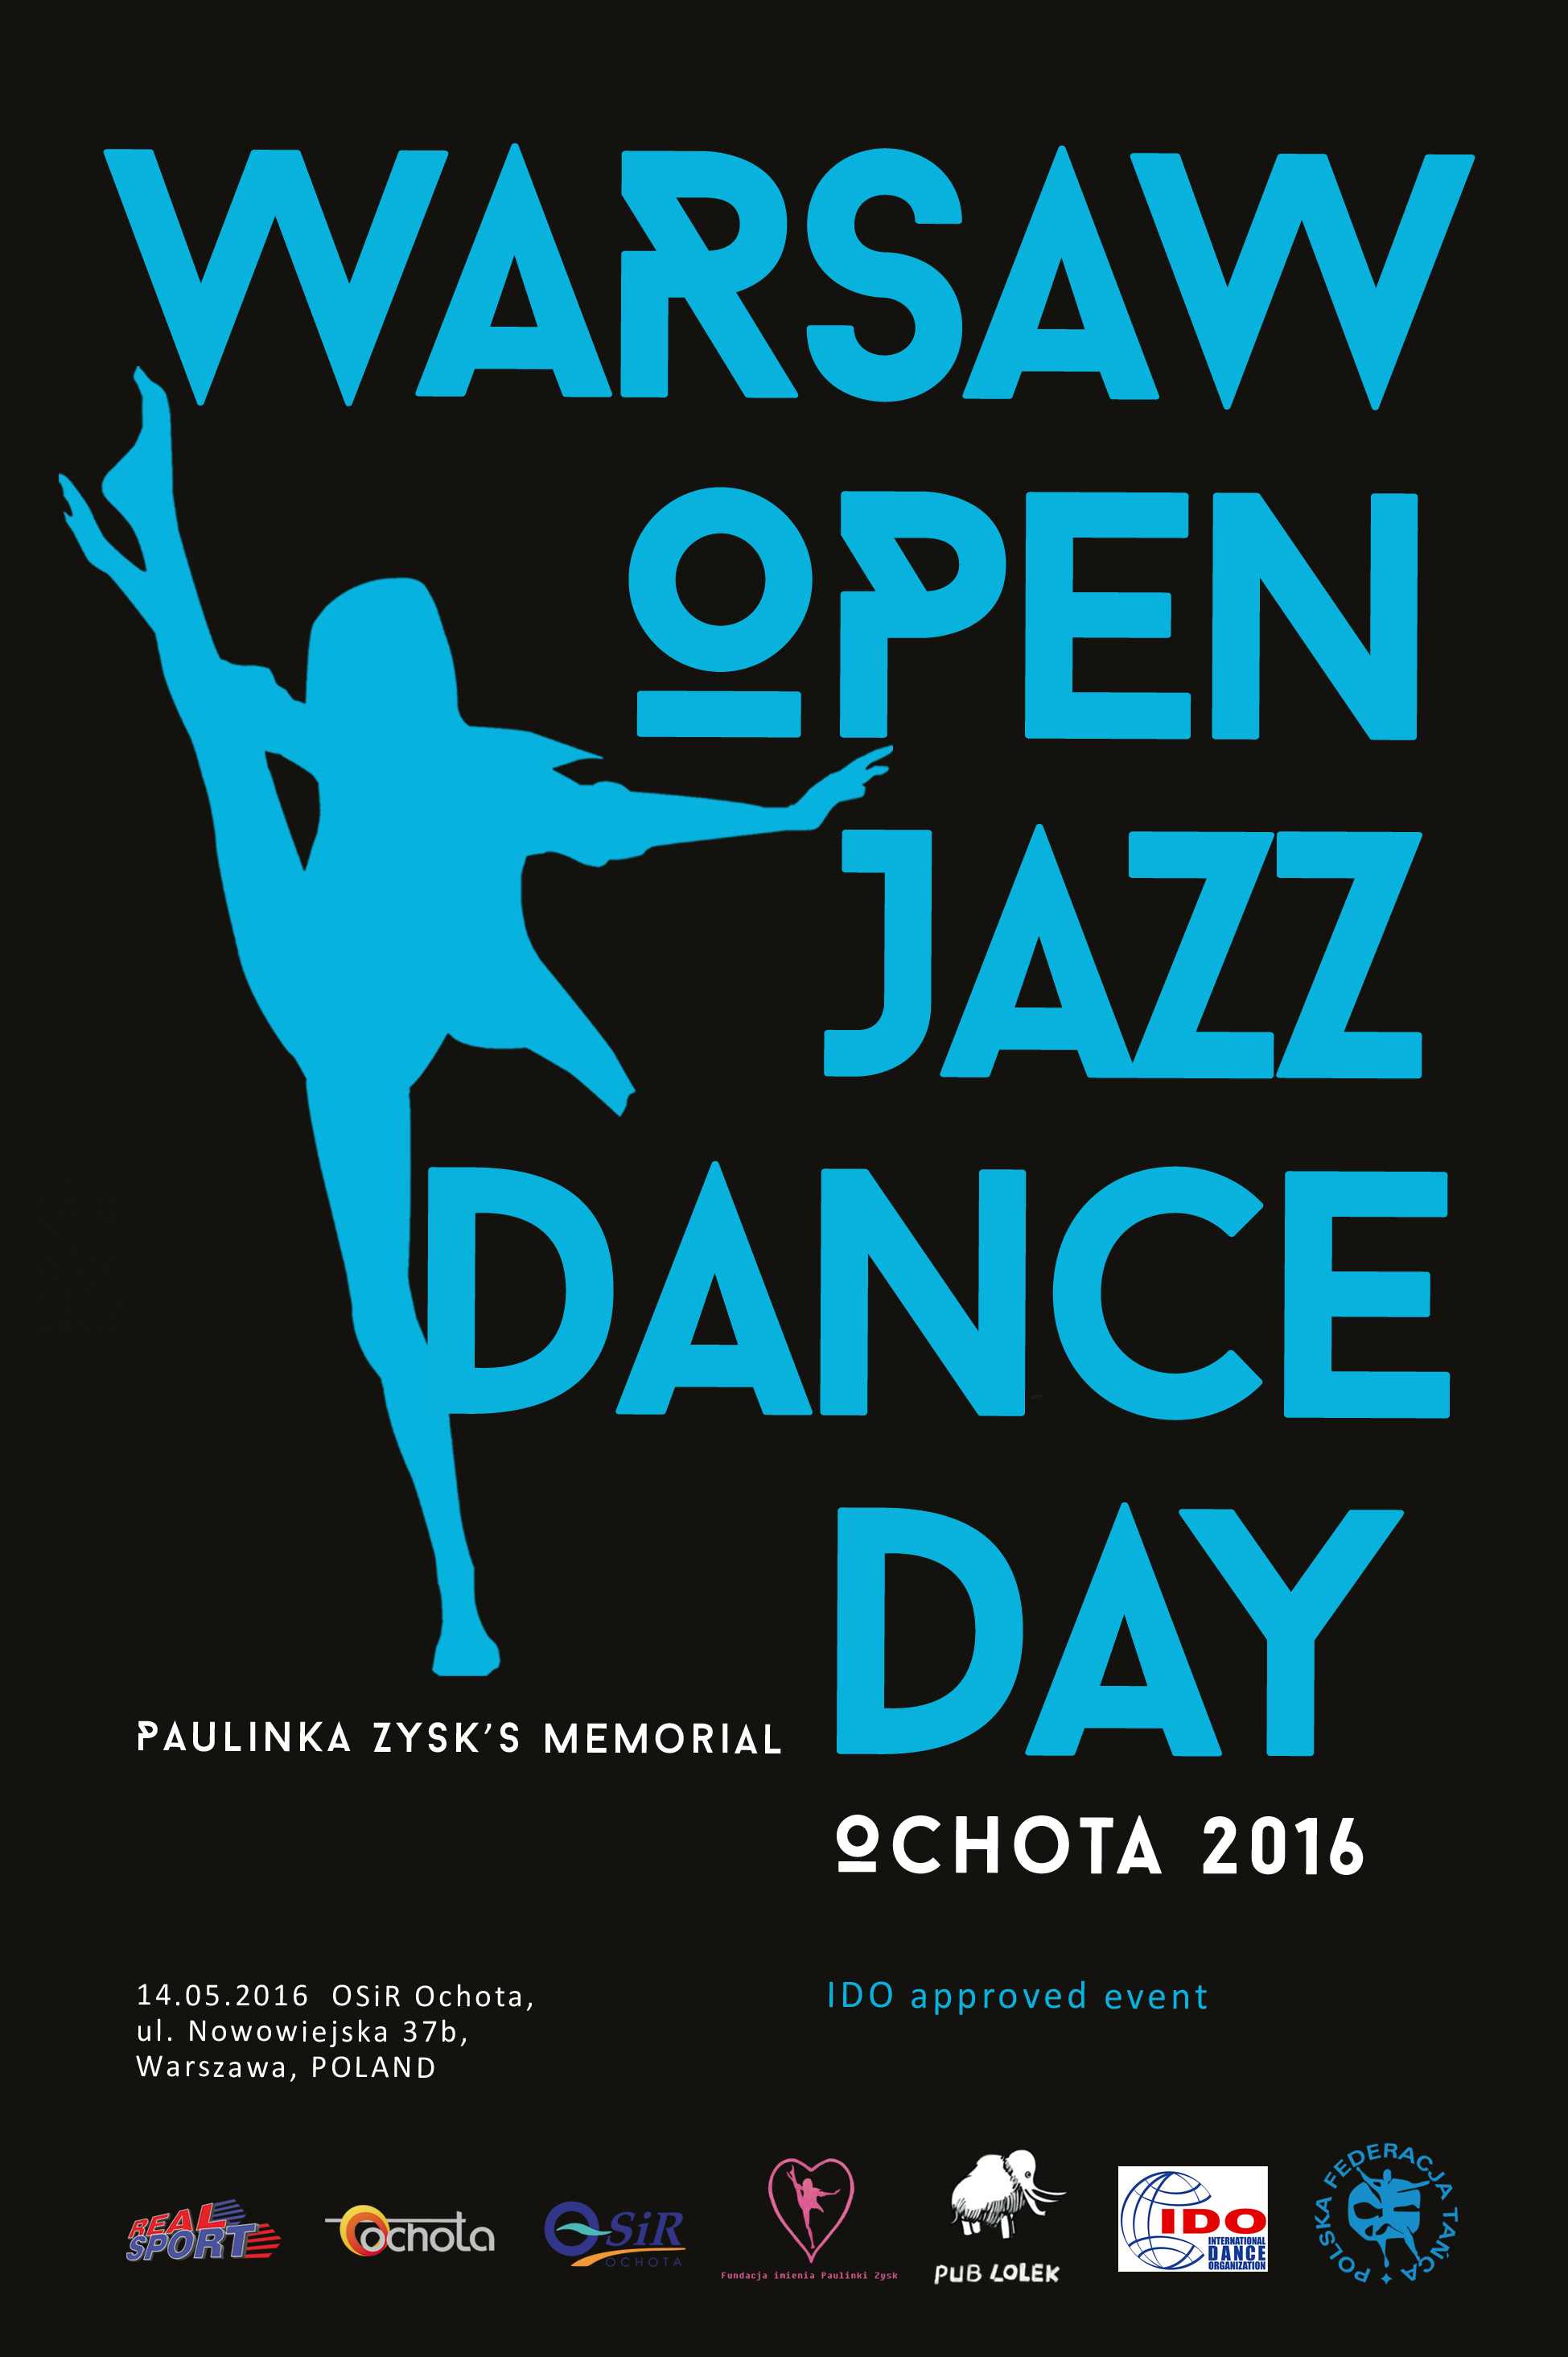 Ido warsaw open jazz dance day poland informations stopboris Choice Image